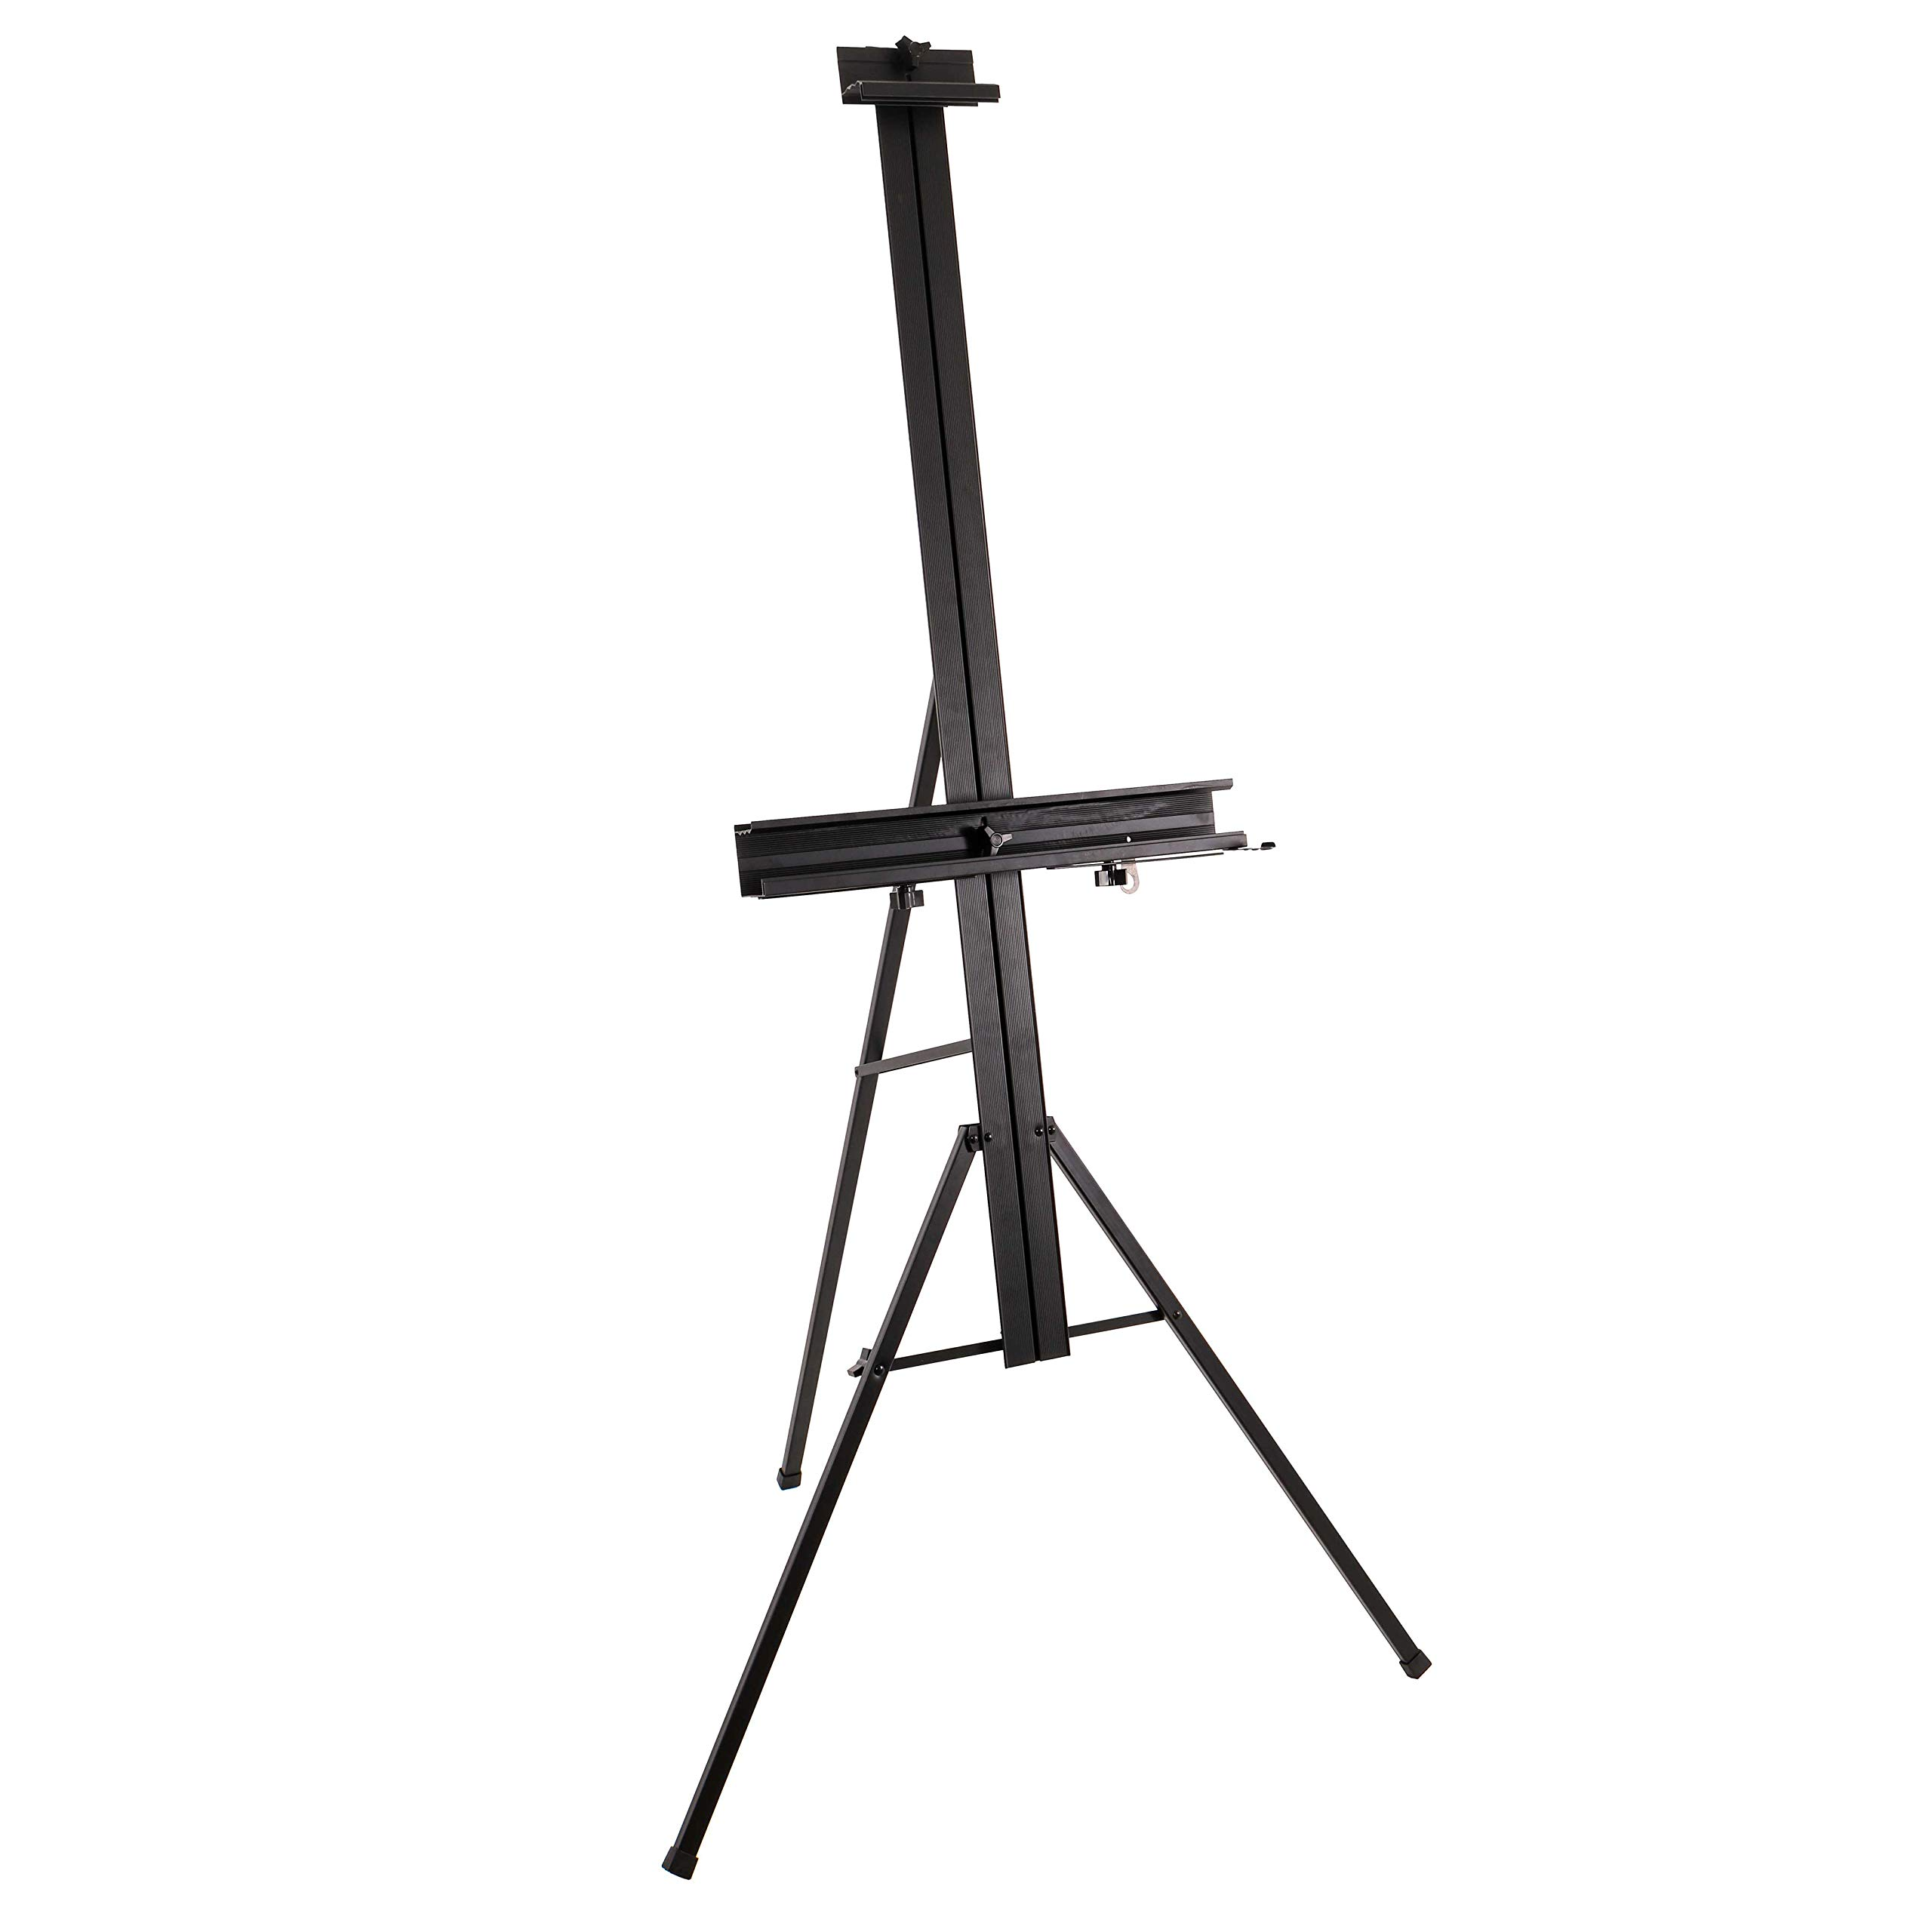 """U.S. Art Supply Del Mar 69"""" High Aluminum Single Mast Artists Studio Easel and Floor Display Stand - Professional Heavy Duty Adjustable Extra Large Canvas Height Up To 47"""" - Palette Holder, Brush Rest"""